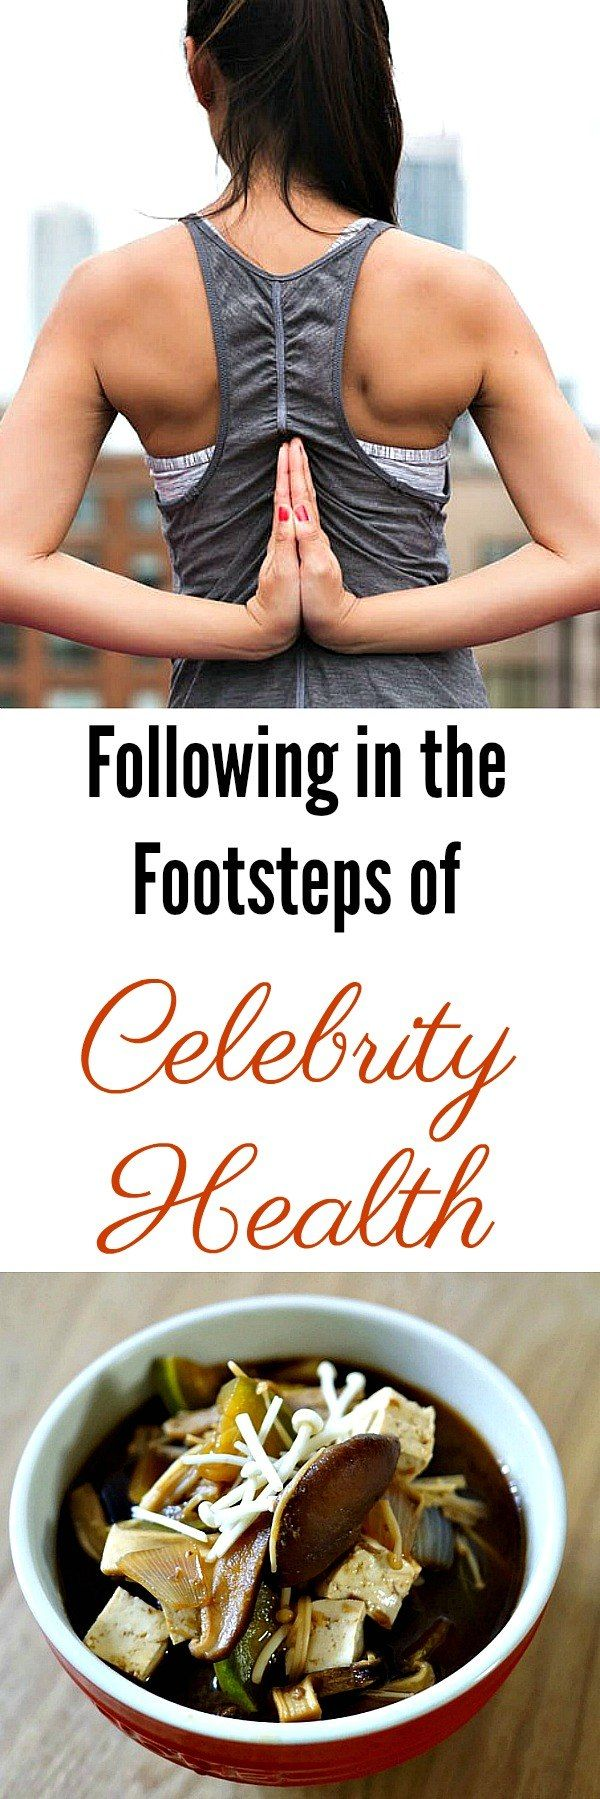 Following in the Footsteps of Celebrity Health; Often we look to our favorite celebrities who have glowing skin and perfect bodies, even just after giving birth, and wonder how they do it. How do these exceptionally busy people manage their lives in such a way that they are able to do what they do and are able to look so great and maintain optimum levels of health and wellness. #health #wellness #celebrities #wellness